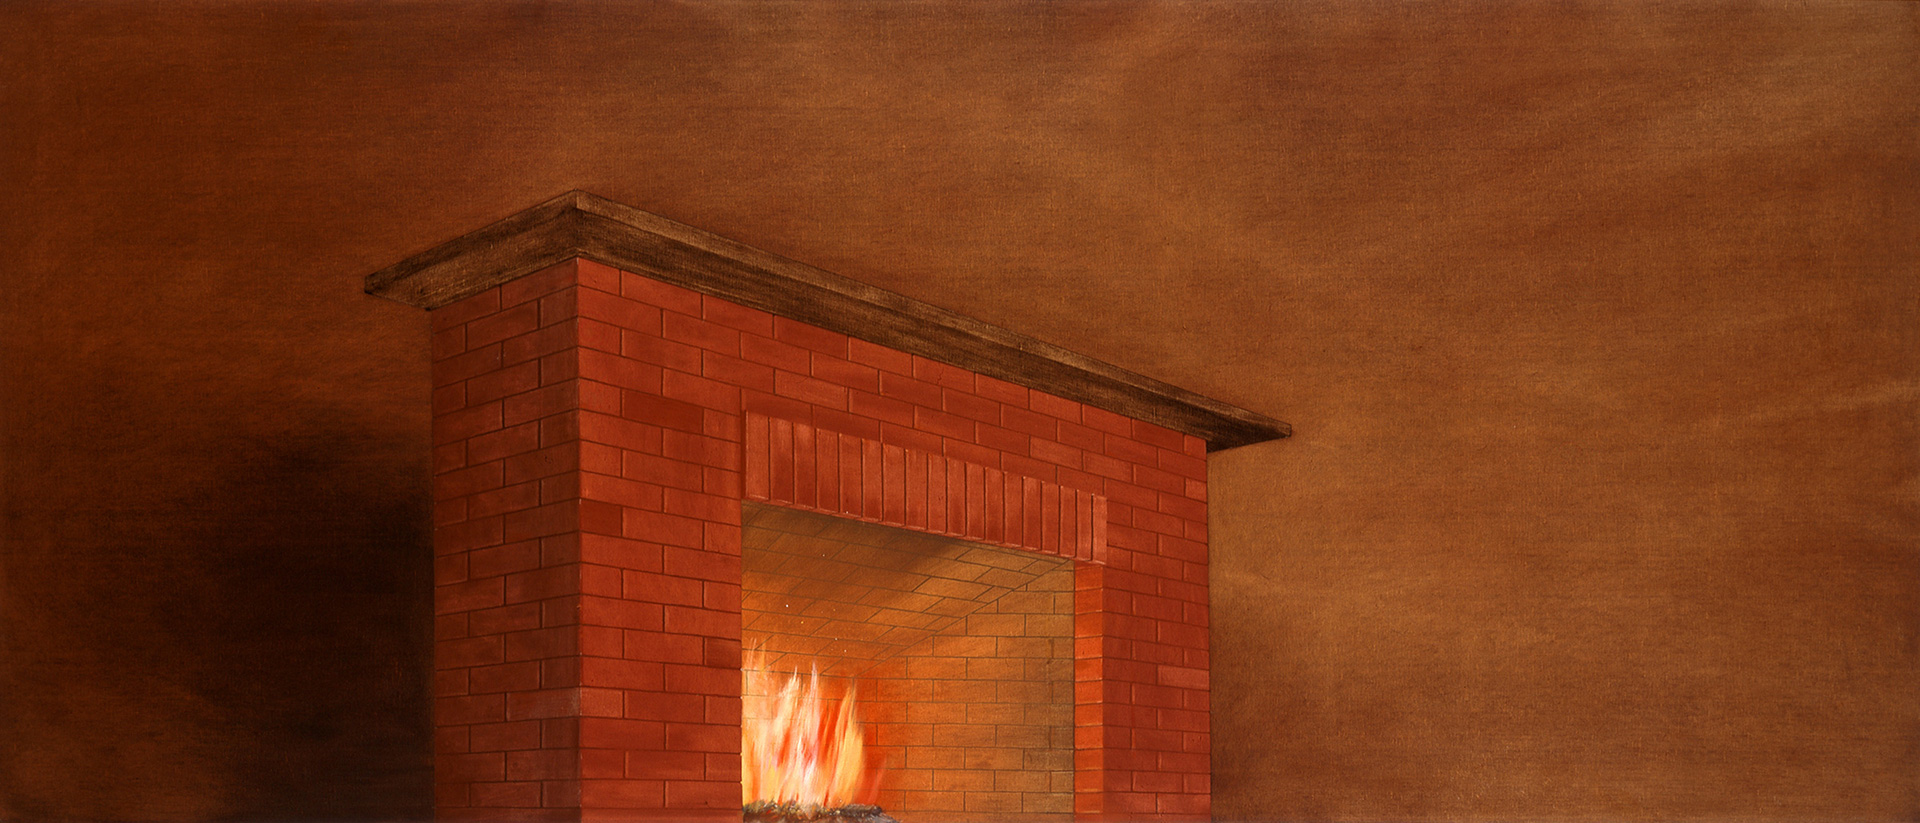 Ed Ruscha - No End to the Things Made Out of Human Talk, 1977, oil on canvas